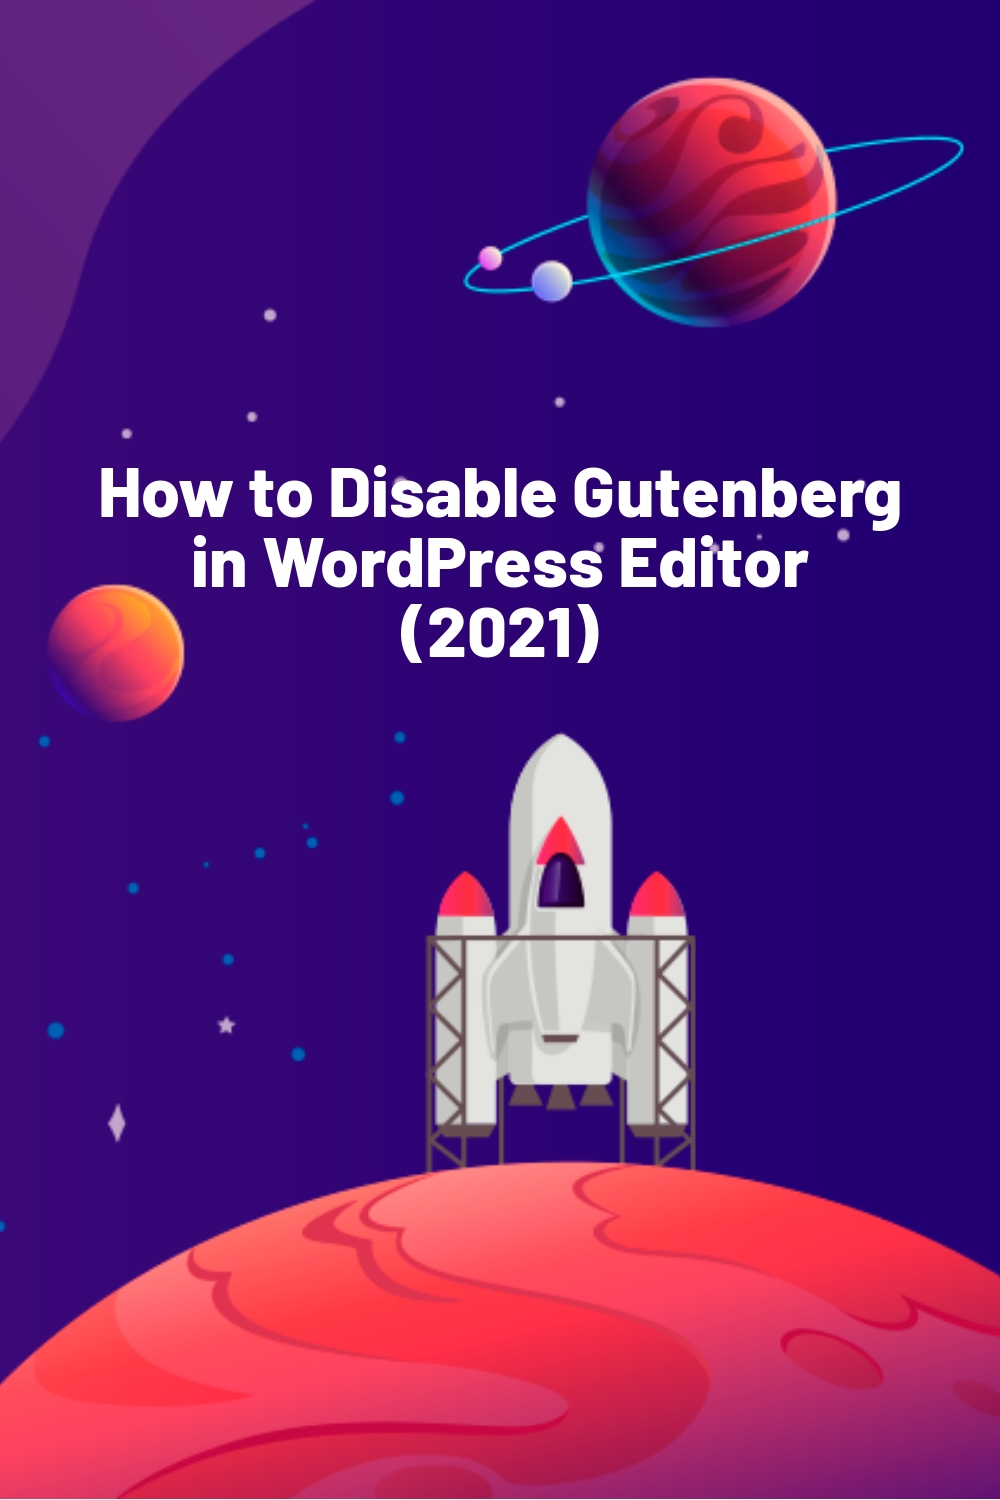 How to Disable Gutenberg in WordPress Editor (2021)